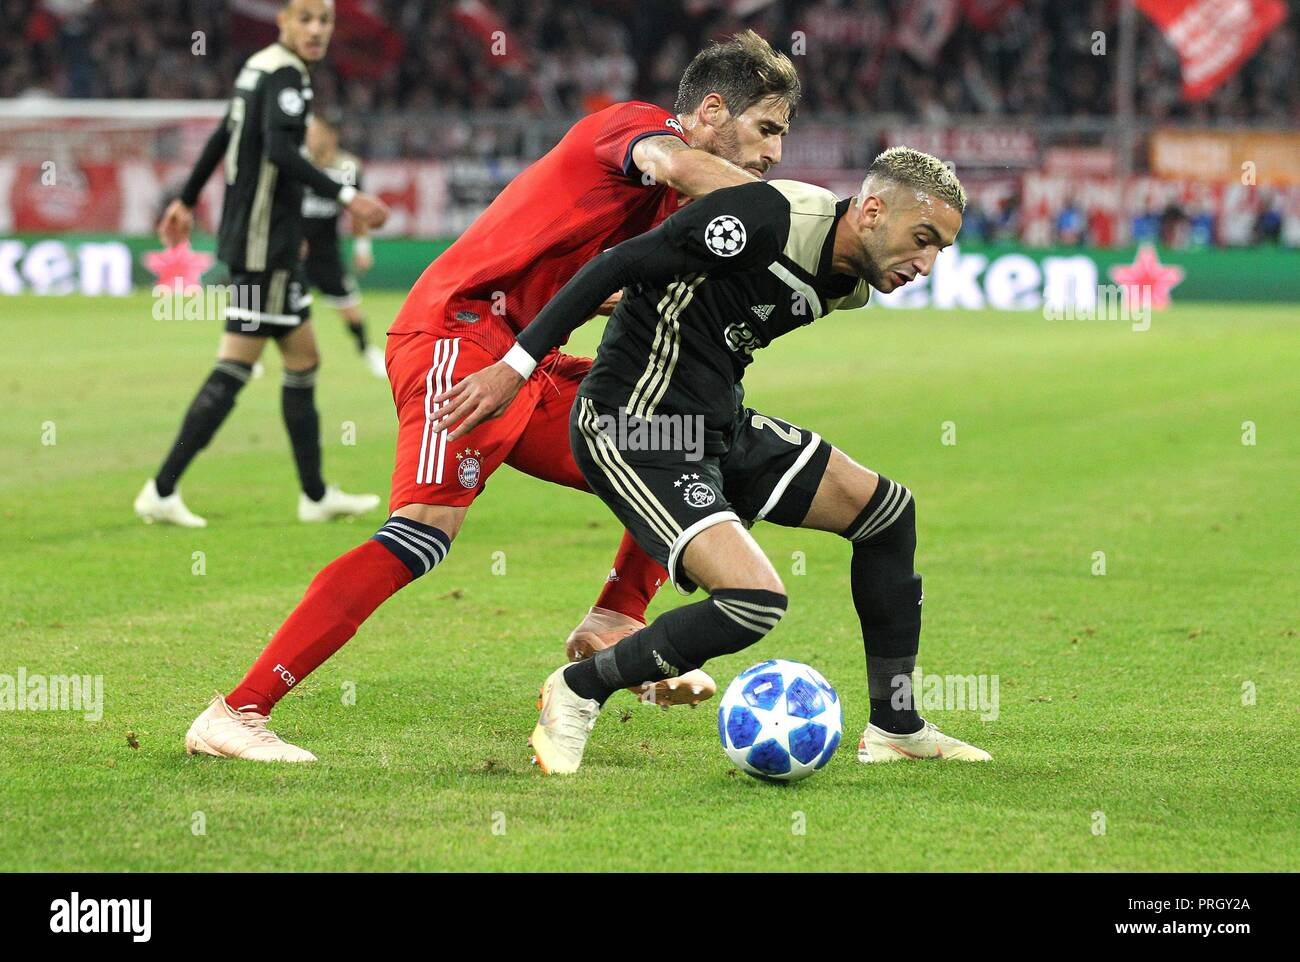 c8c01d17b Ziyech Ajax Stock Photos   Ziyech Ajax Stock Images - Alamy